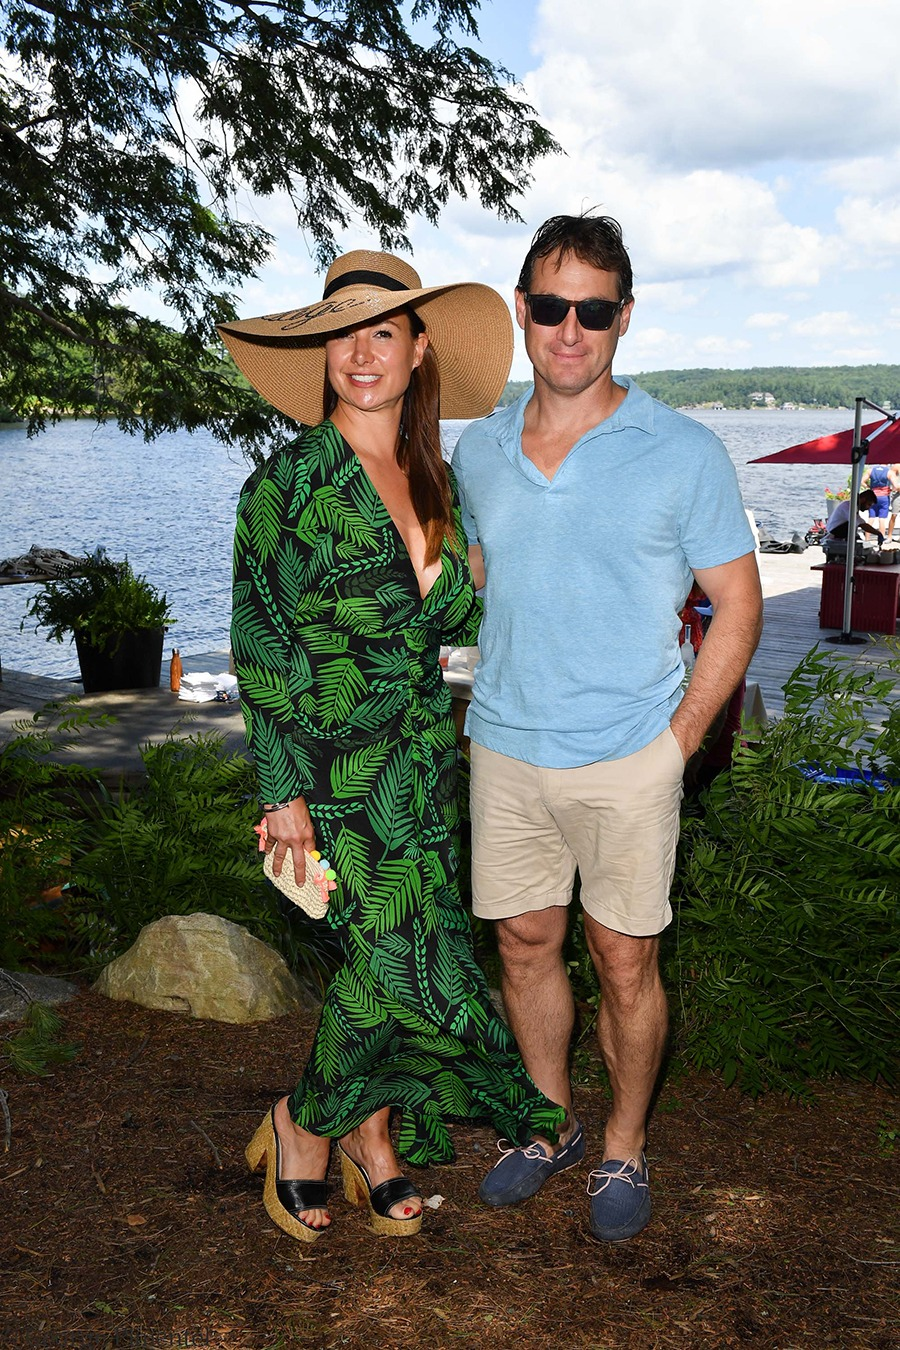 Cottage owners and dock party hosts, Tamara Bahry and Rob White. (Photo by George Pimentel for Commission Yourself)